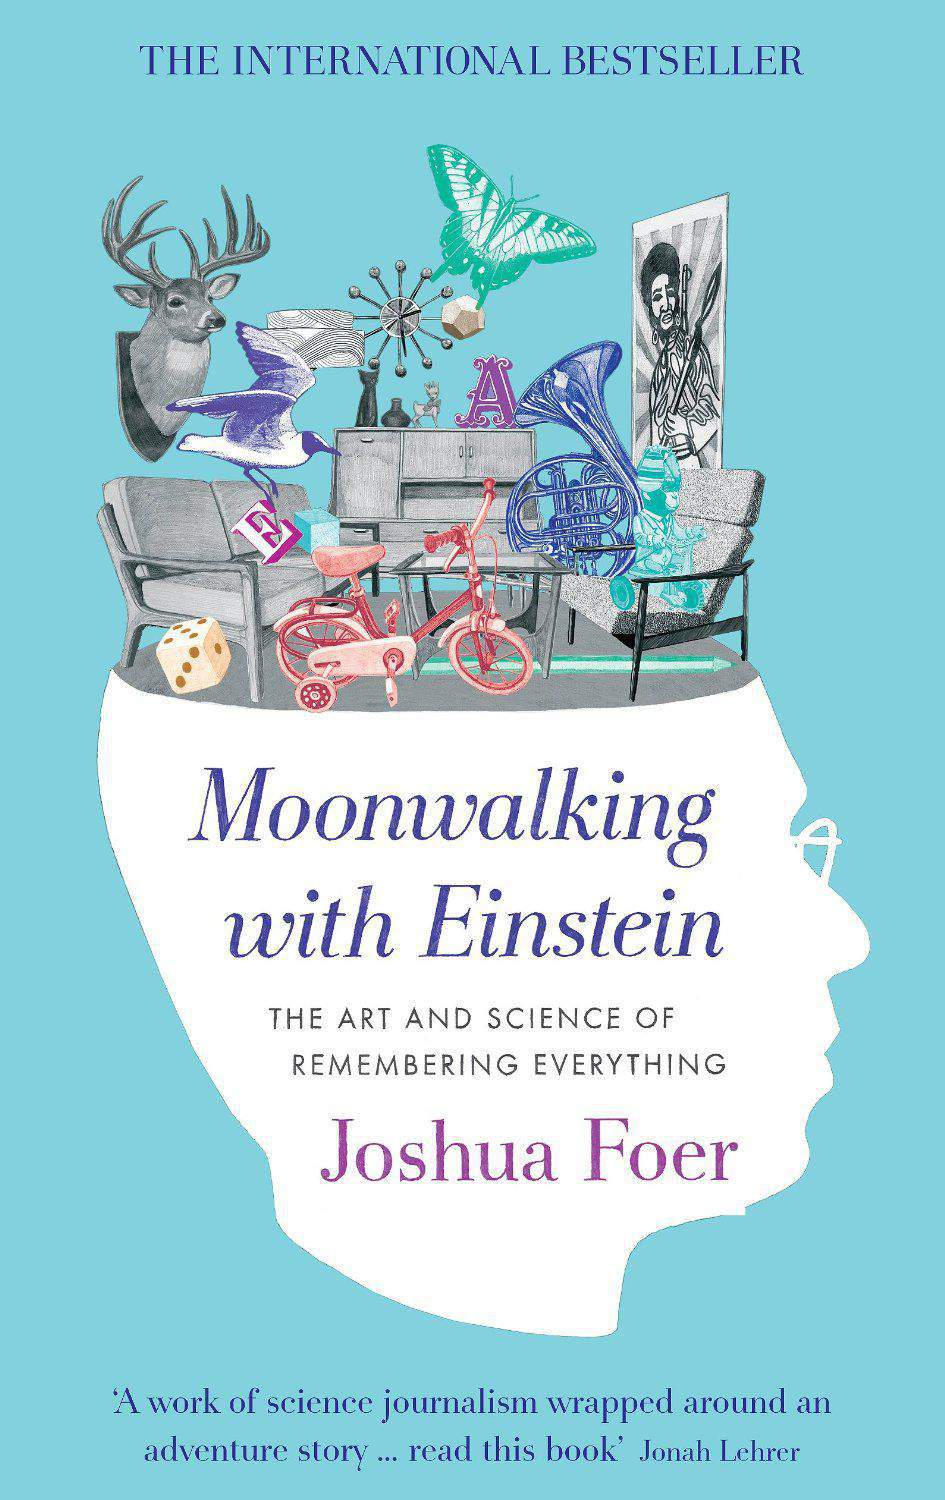 Moonwalking with Einstein The Art and Science of Remembering Everything - (PB)